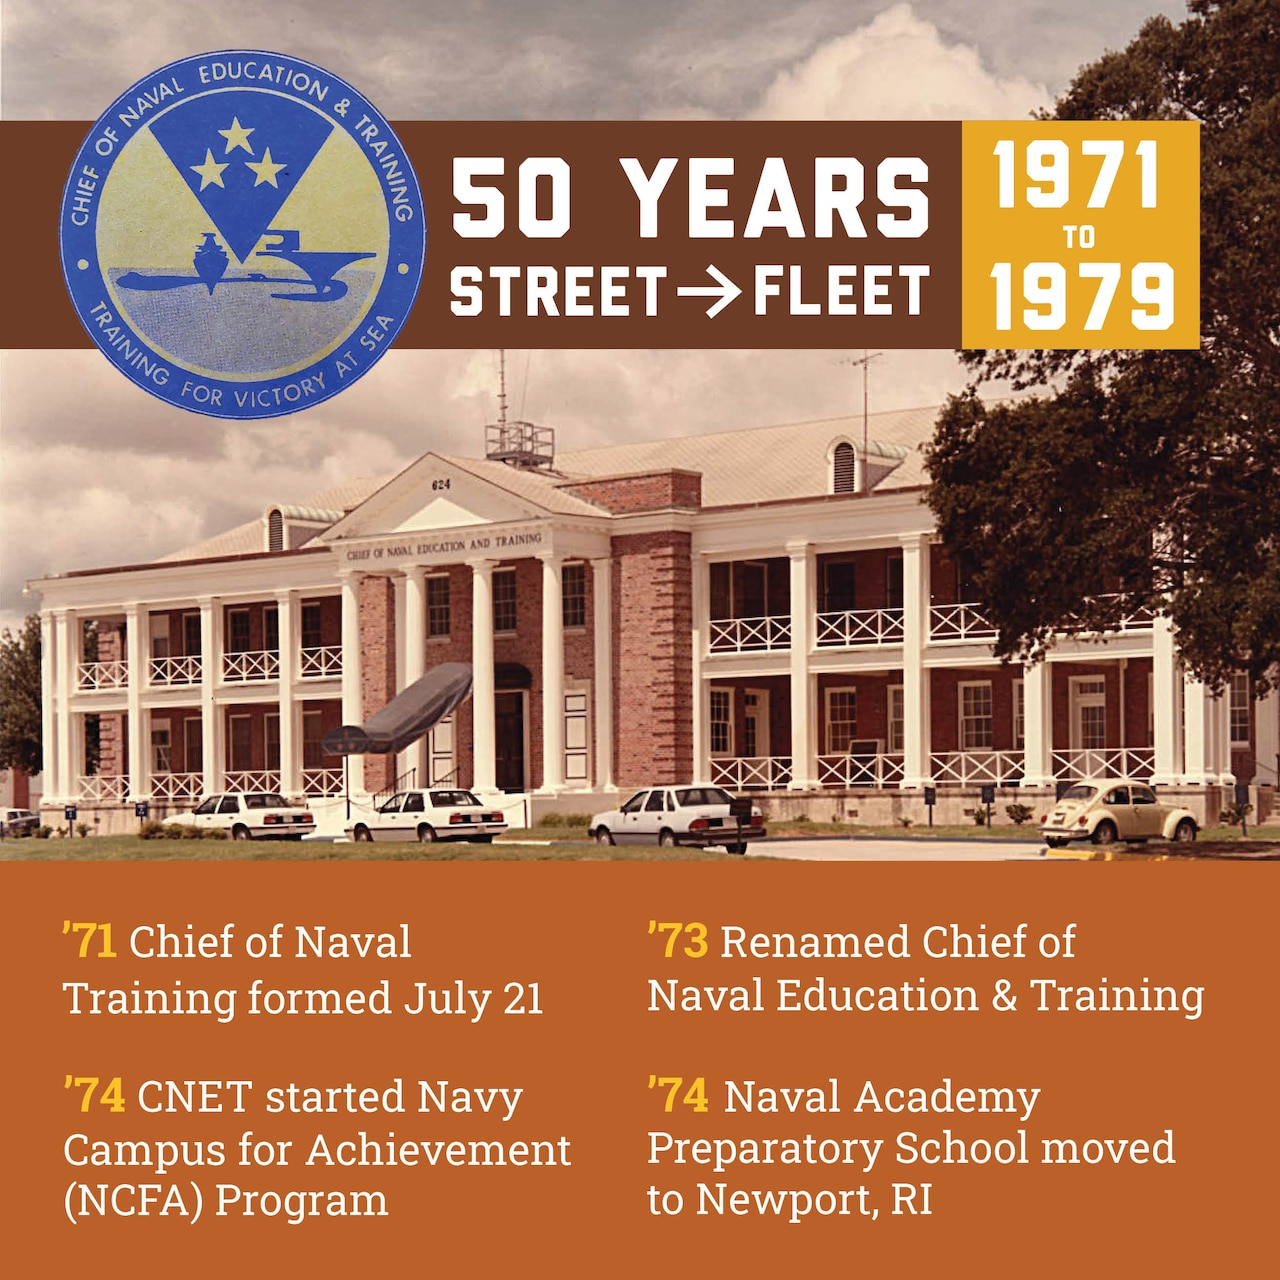 Graphic created for Naval Education and Training Command's (NETC) 50th anniversary observance, depicting 1971-1979, incorporating a scan of an original printed image of the Chief of Naval Education and Training (CNET) headquarters, which was originally in building 624 at Naval Air Station Pensacola, and an early CNET logo.  NETC originally began as the Chief of Naval Training, established on July 21, 1971 and later renamed to CNET in 1973 and NETC in 2003.